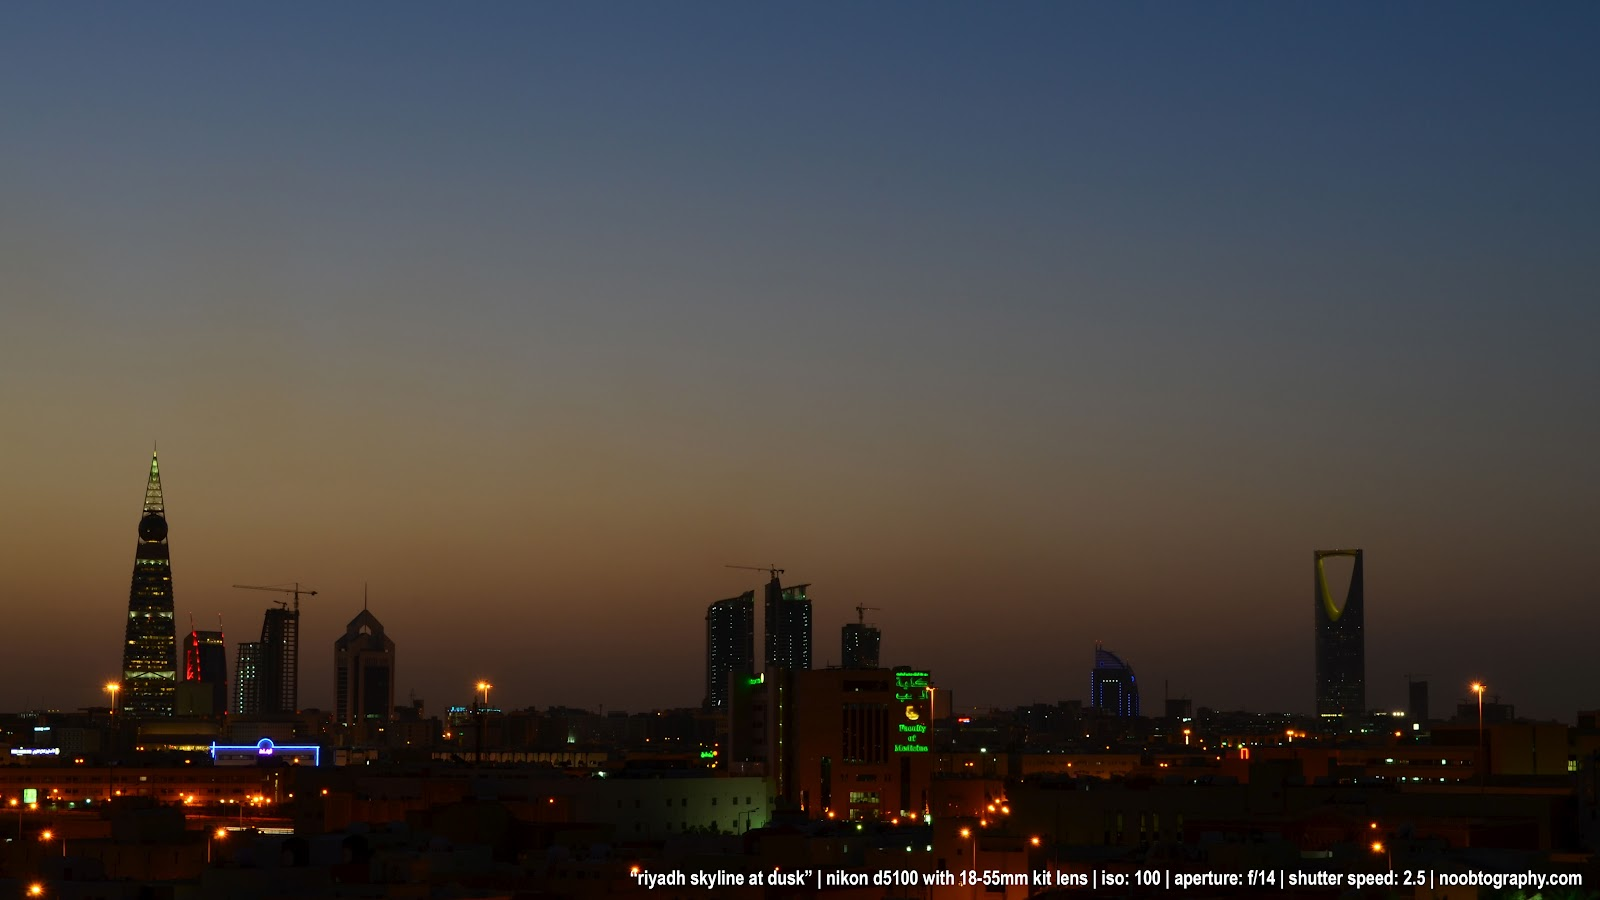 RIYADH l Photo Gallery. - Page 96 - SkyscraperCity